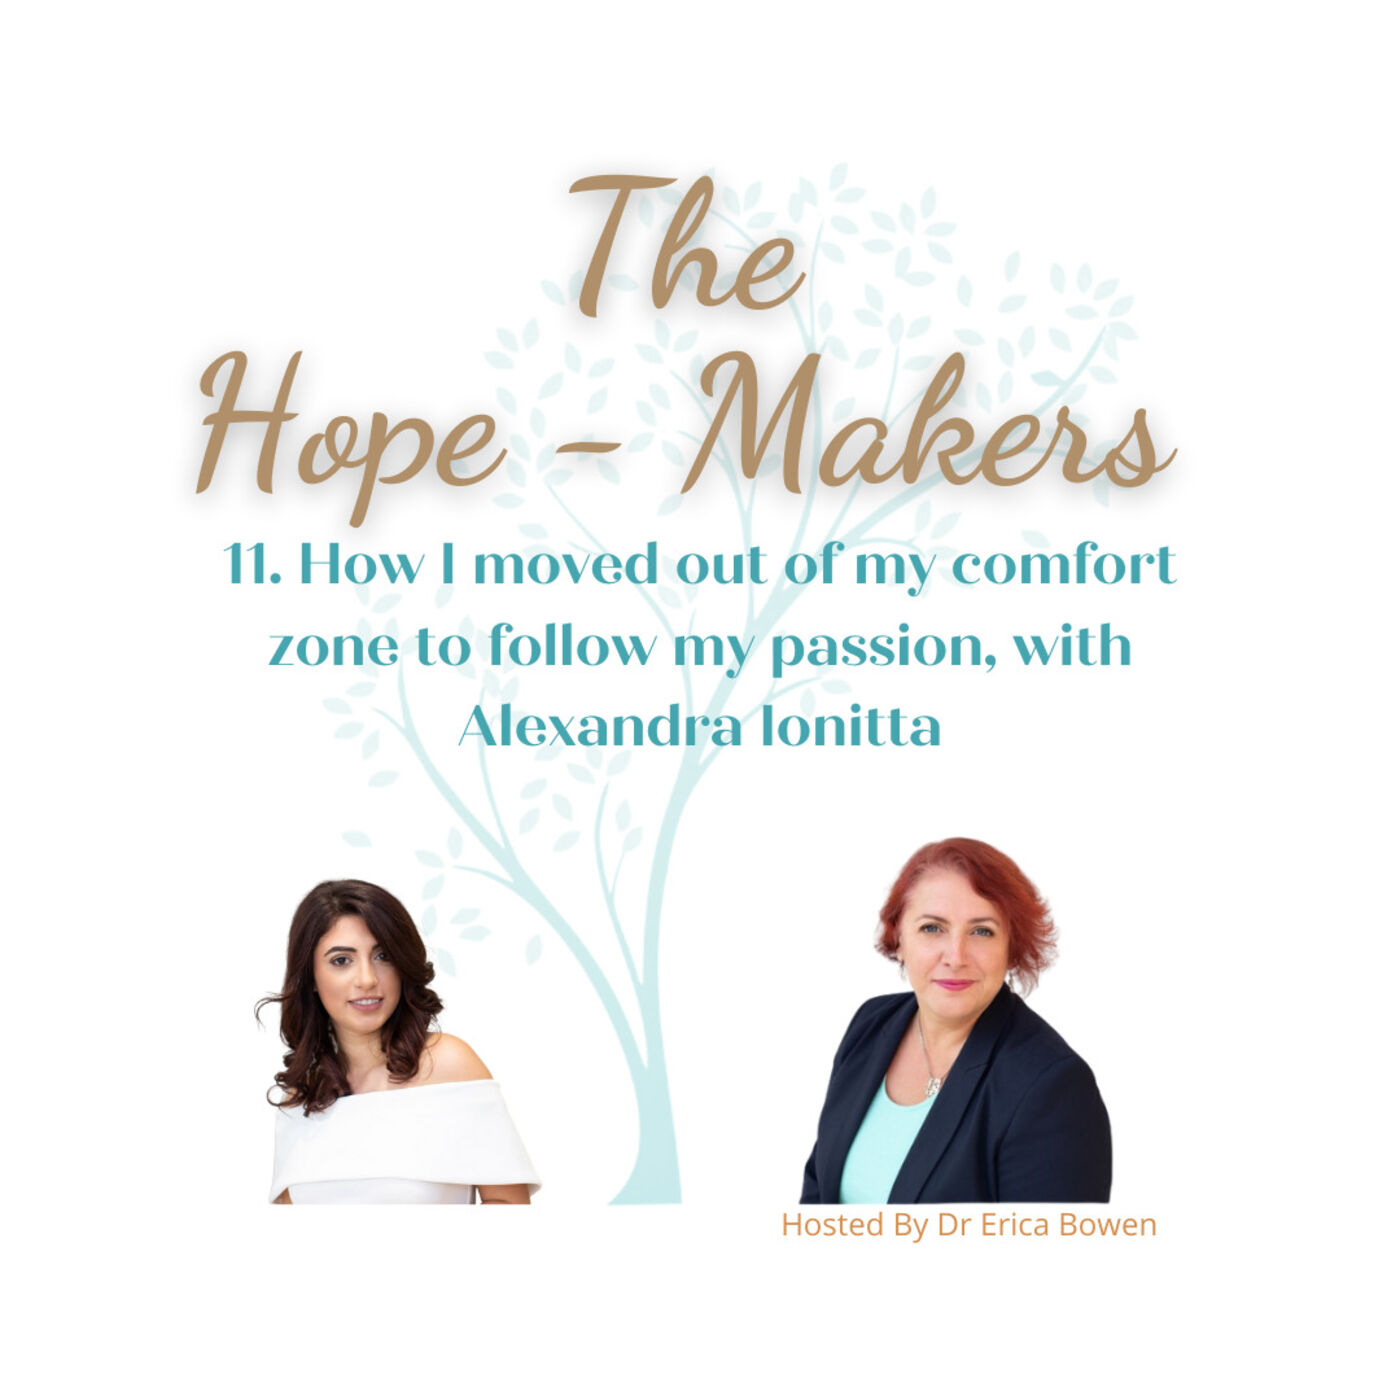 Episode 11. How I moved out of my comfort zone to pursue my passion, with Alexandra Ionitta